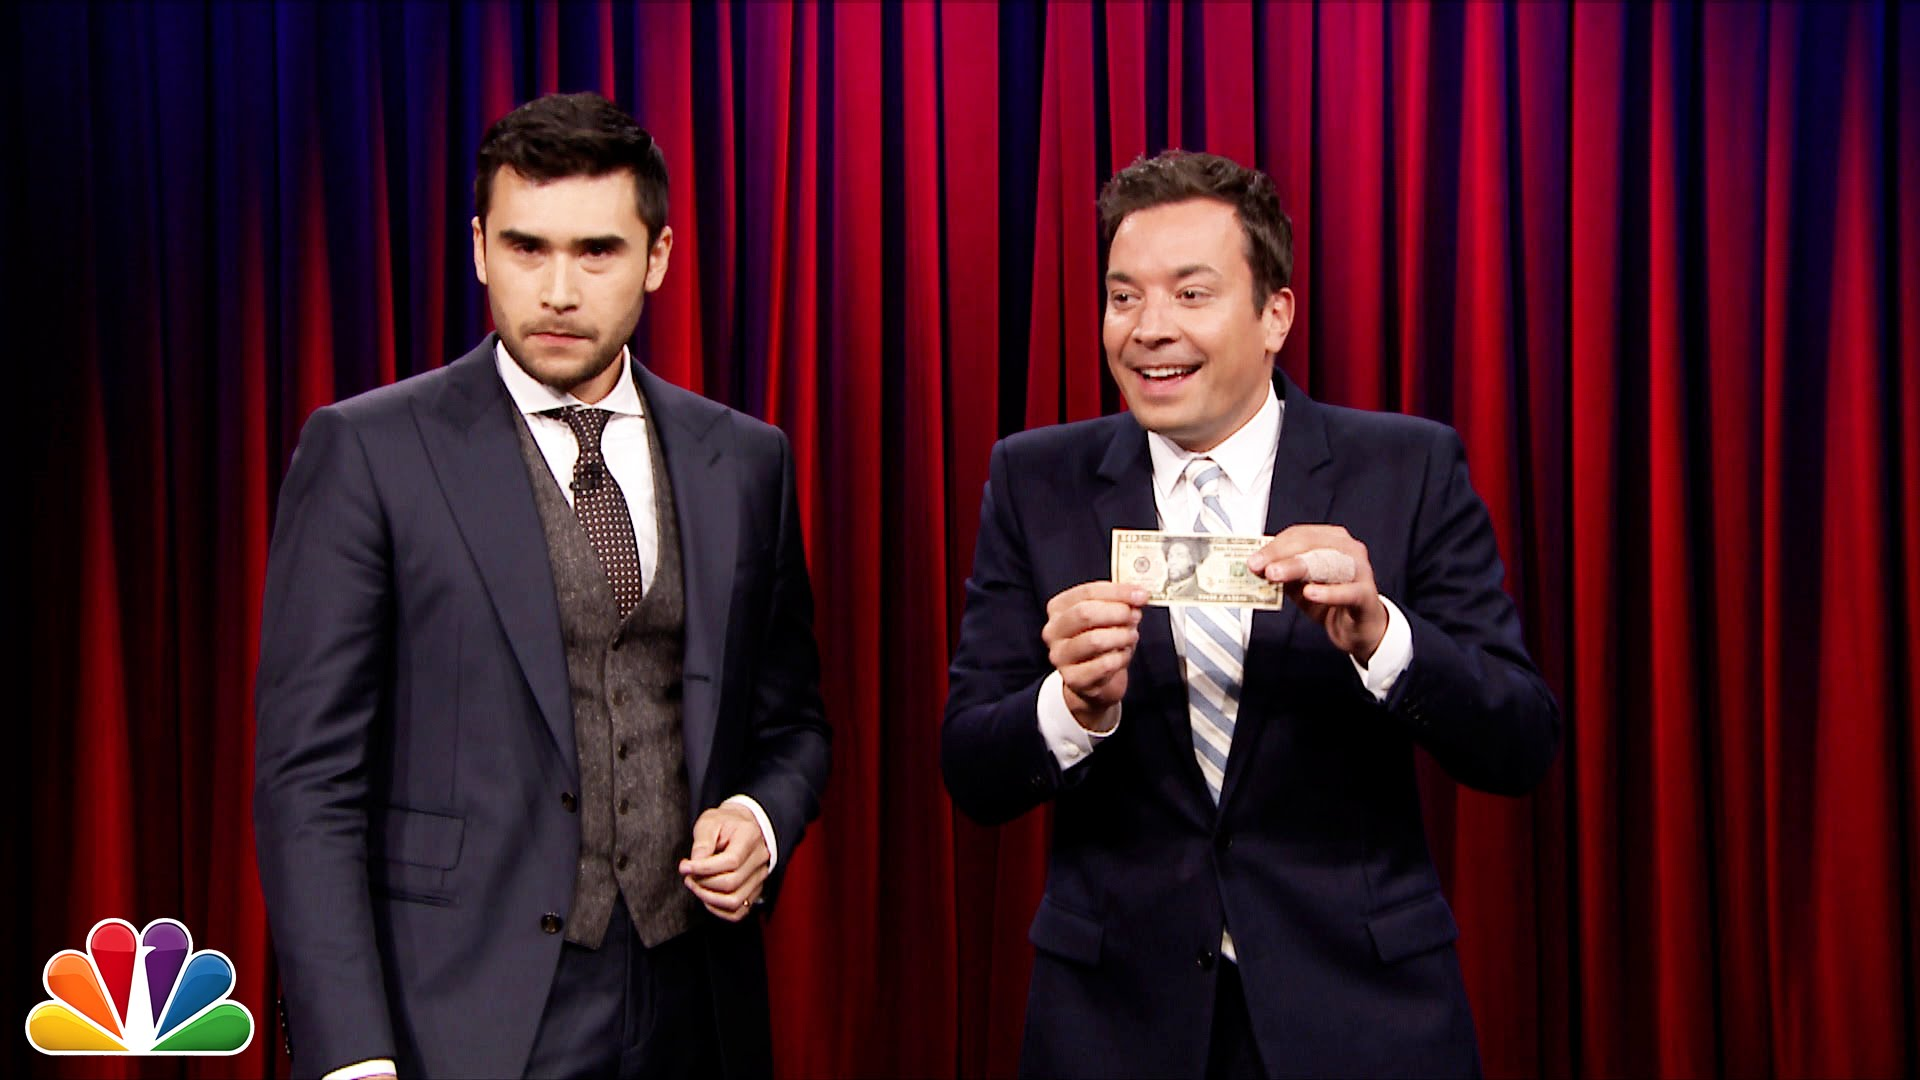 Watch Late Night with Jimmy Fallon Season  - Magician Dan White Plays Hand Pocket with Jimmy Fallon Online